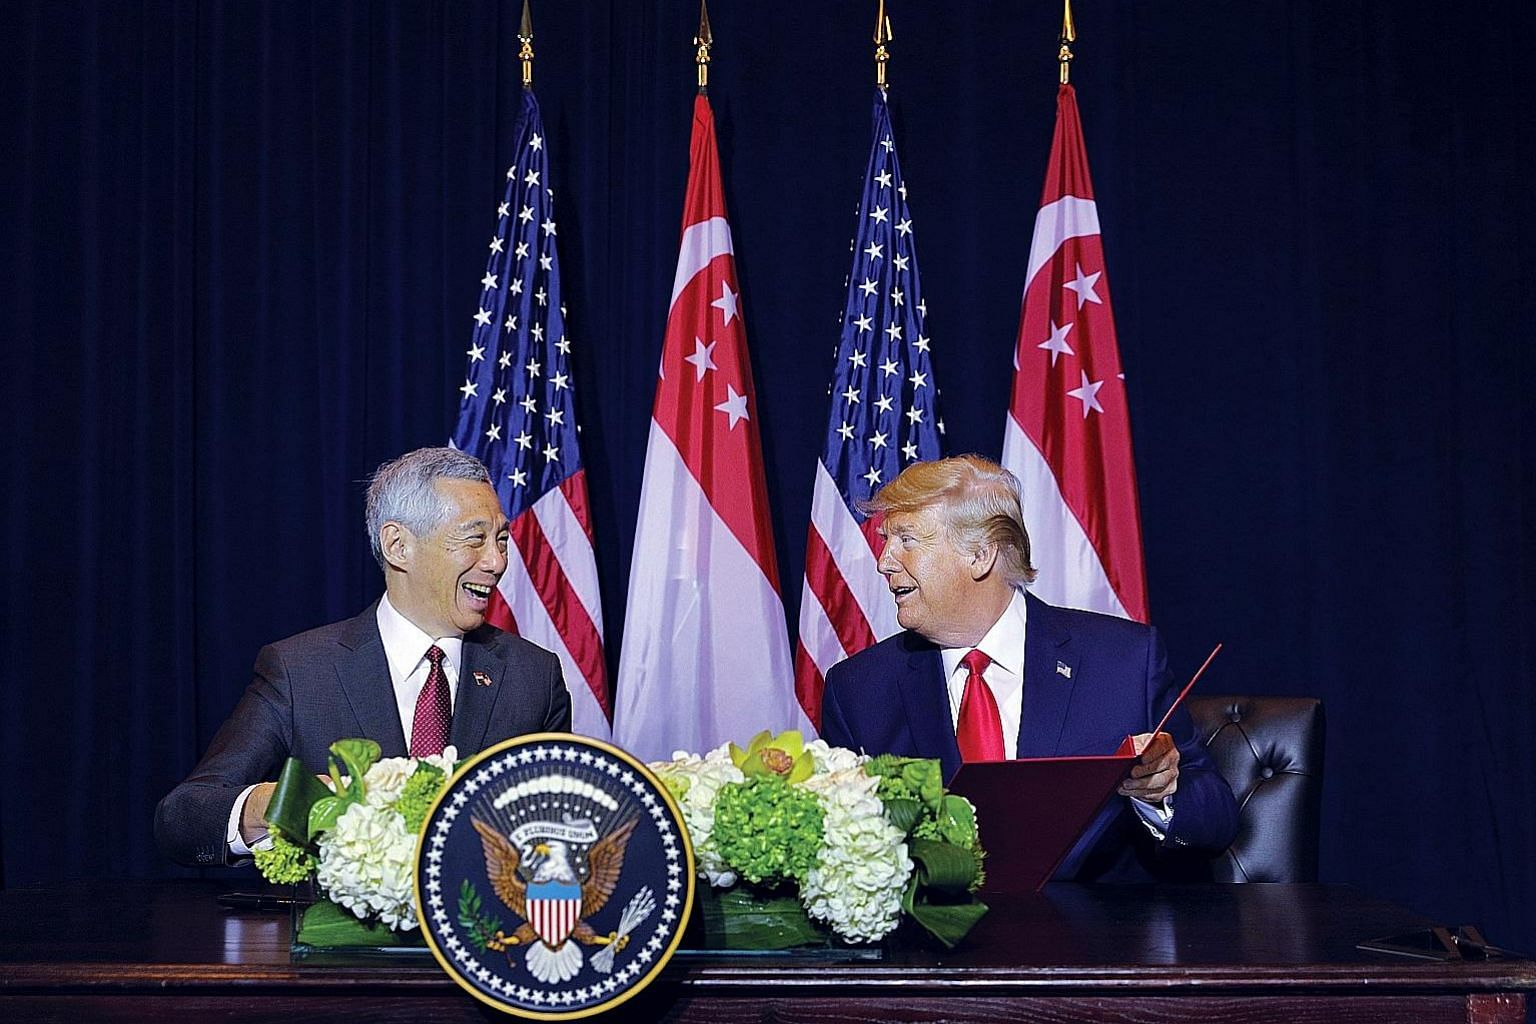 Prime Minister Lee Hsien Loong and US President Donald Trump signing an amendment to the 1990 defence agreement in New York on Monday. Both leaders lauded the close relationship between Singapore and the US. ST PHOTO: GAVIN FOO